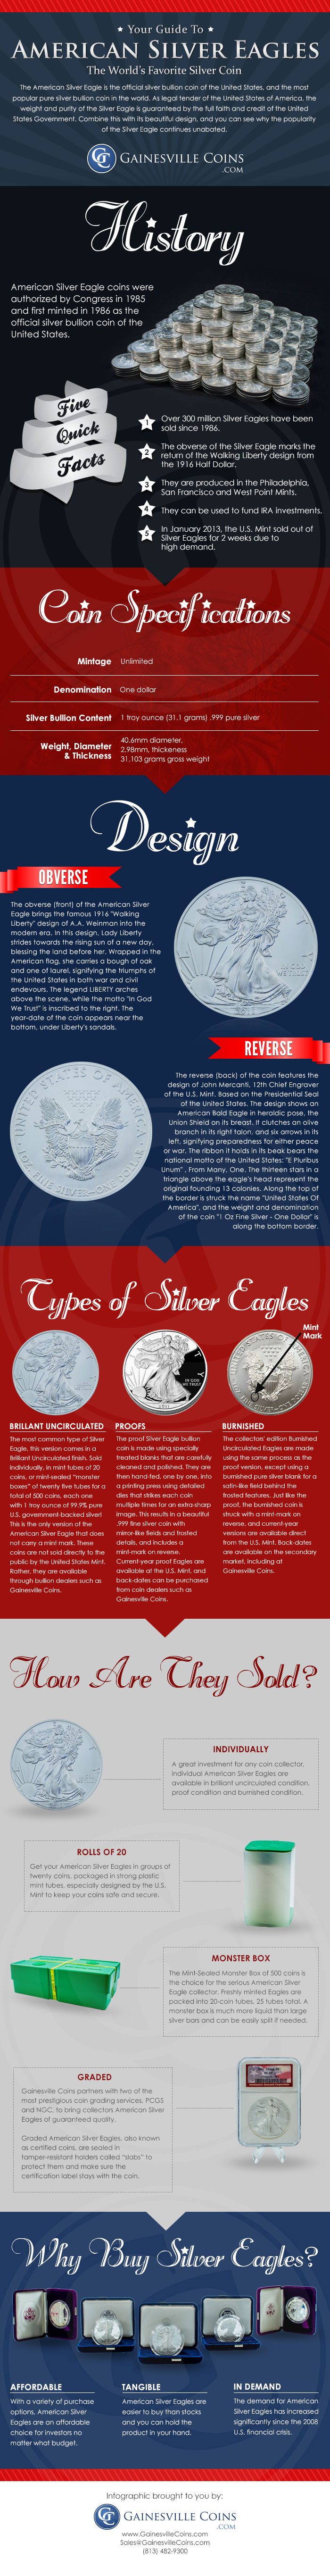 American silver eagles infographic